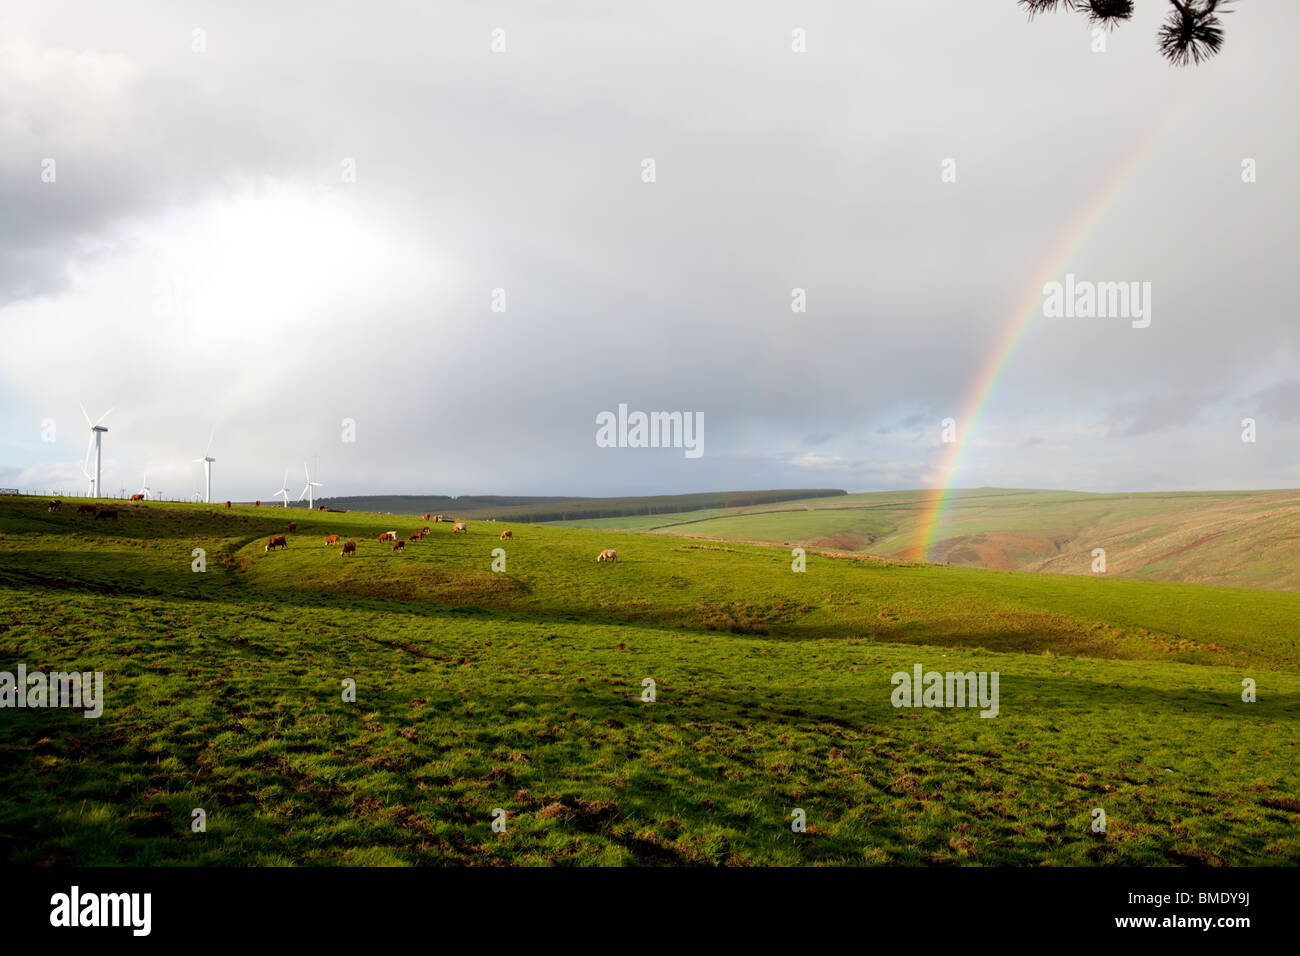 A rainbow against a cloudy sky and farmland, with wind turbines in the distance - Stock Image